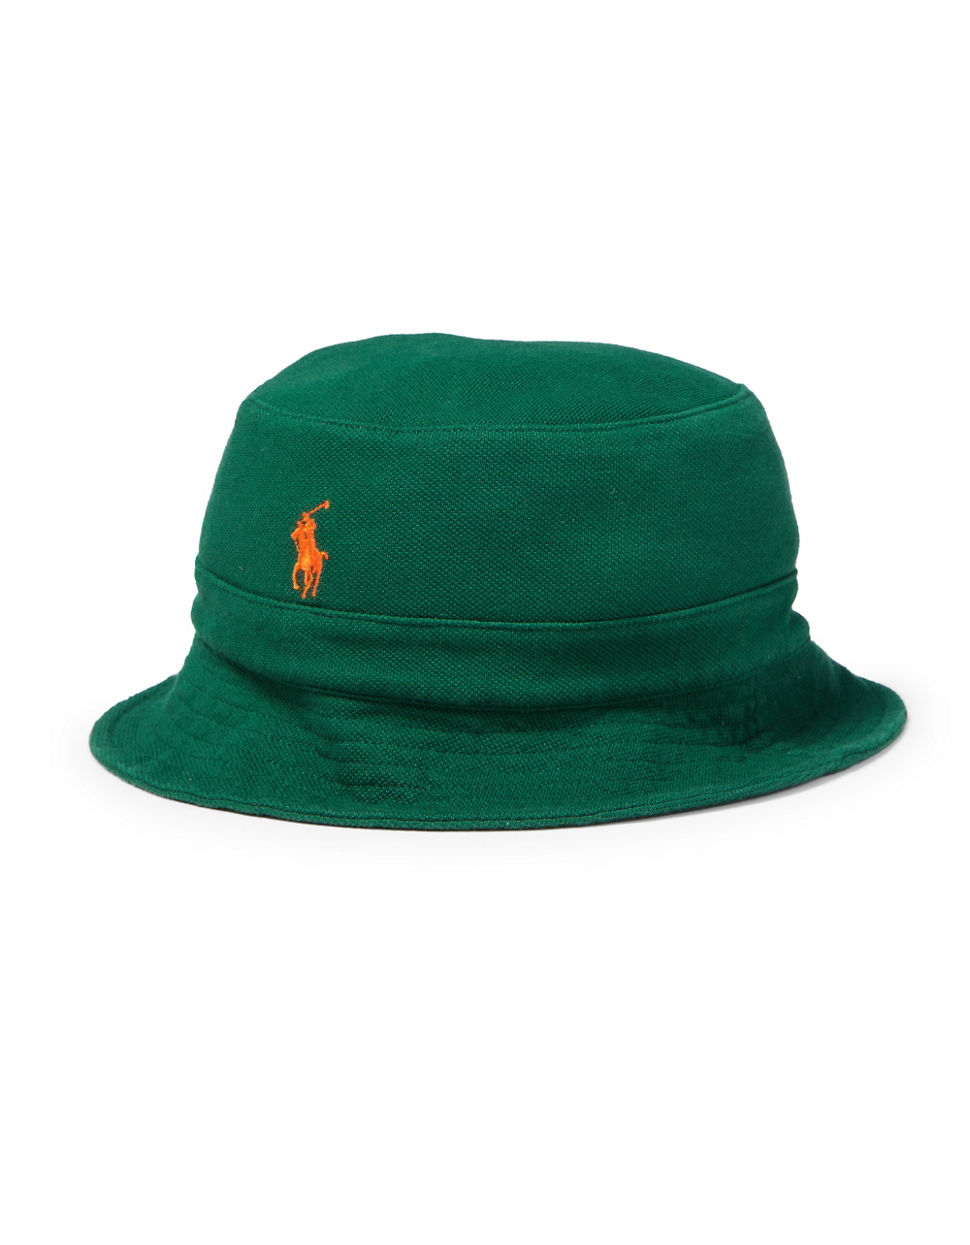 Bucket hats come in a variety of looks and there are bucket hats for women that are quite different than the unisex look of your standard bucket. Generally speaking, a bucket hat is defined simply.